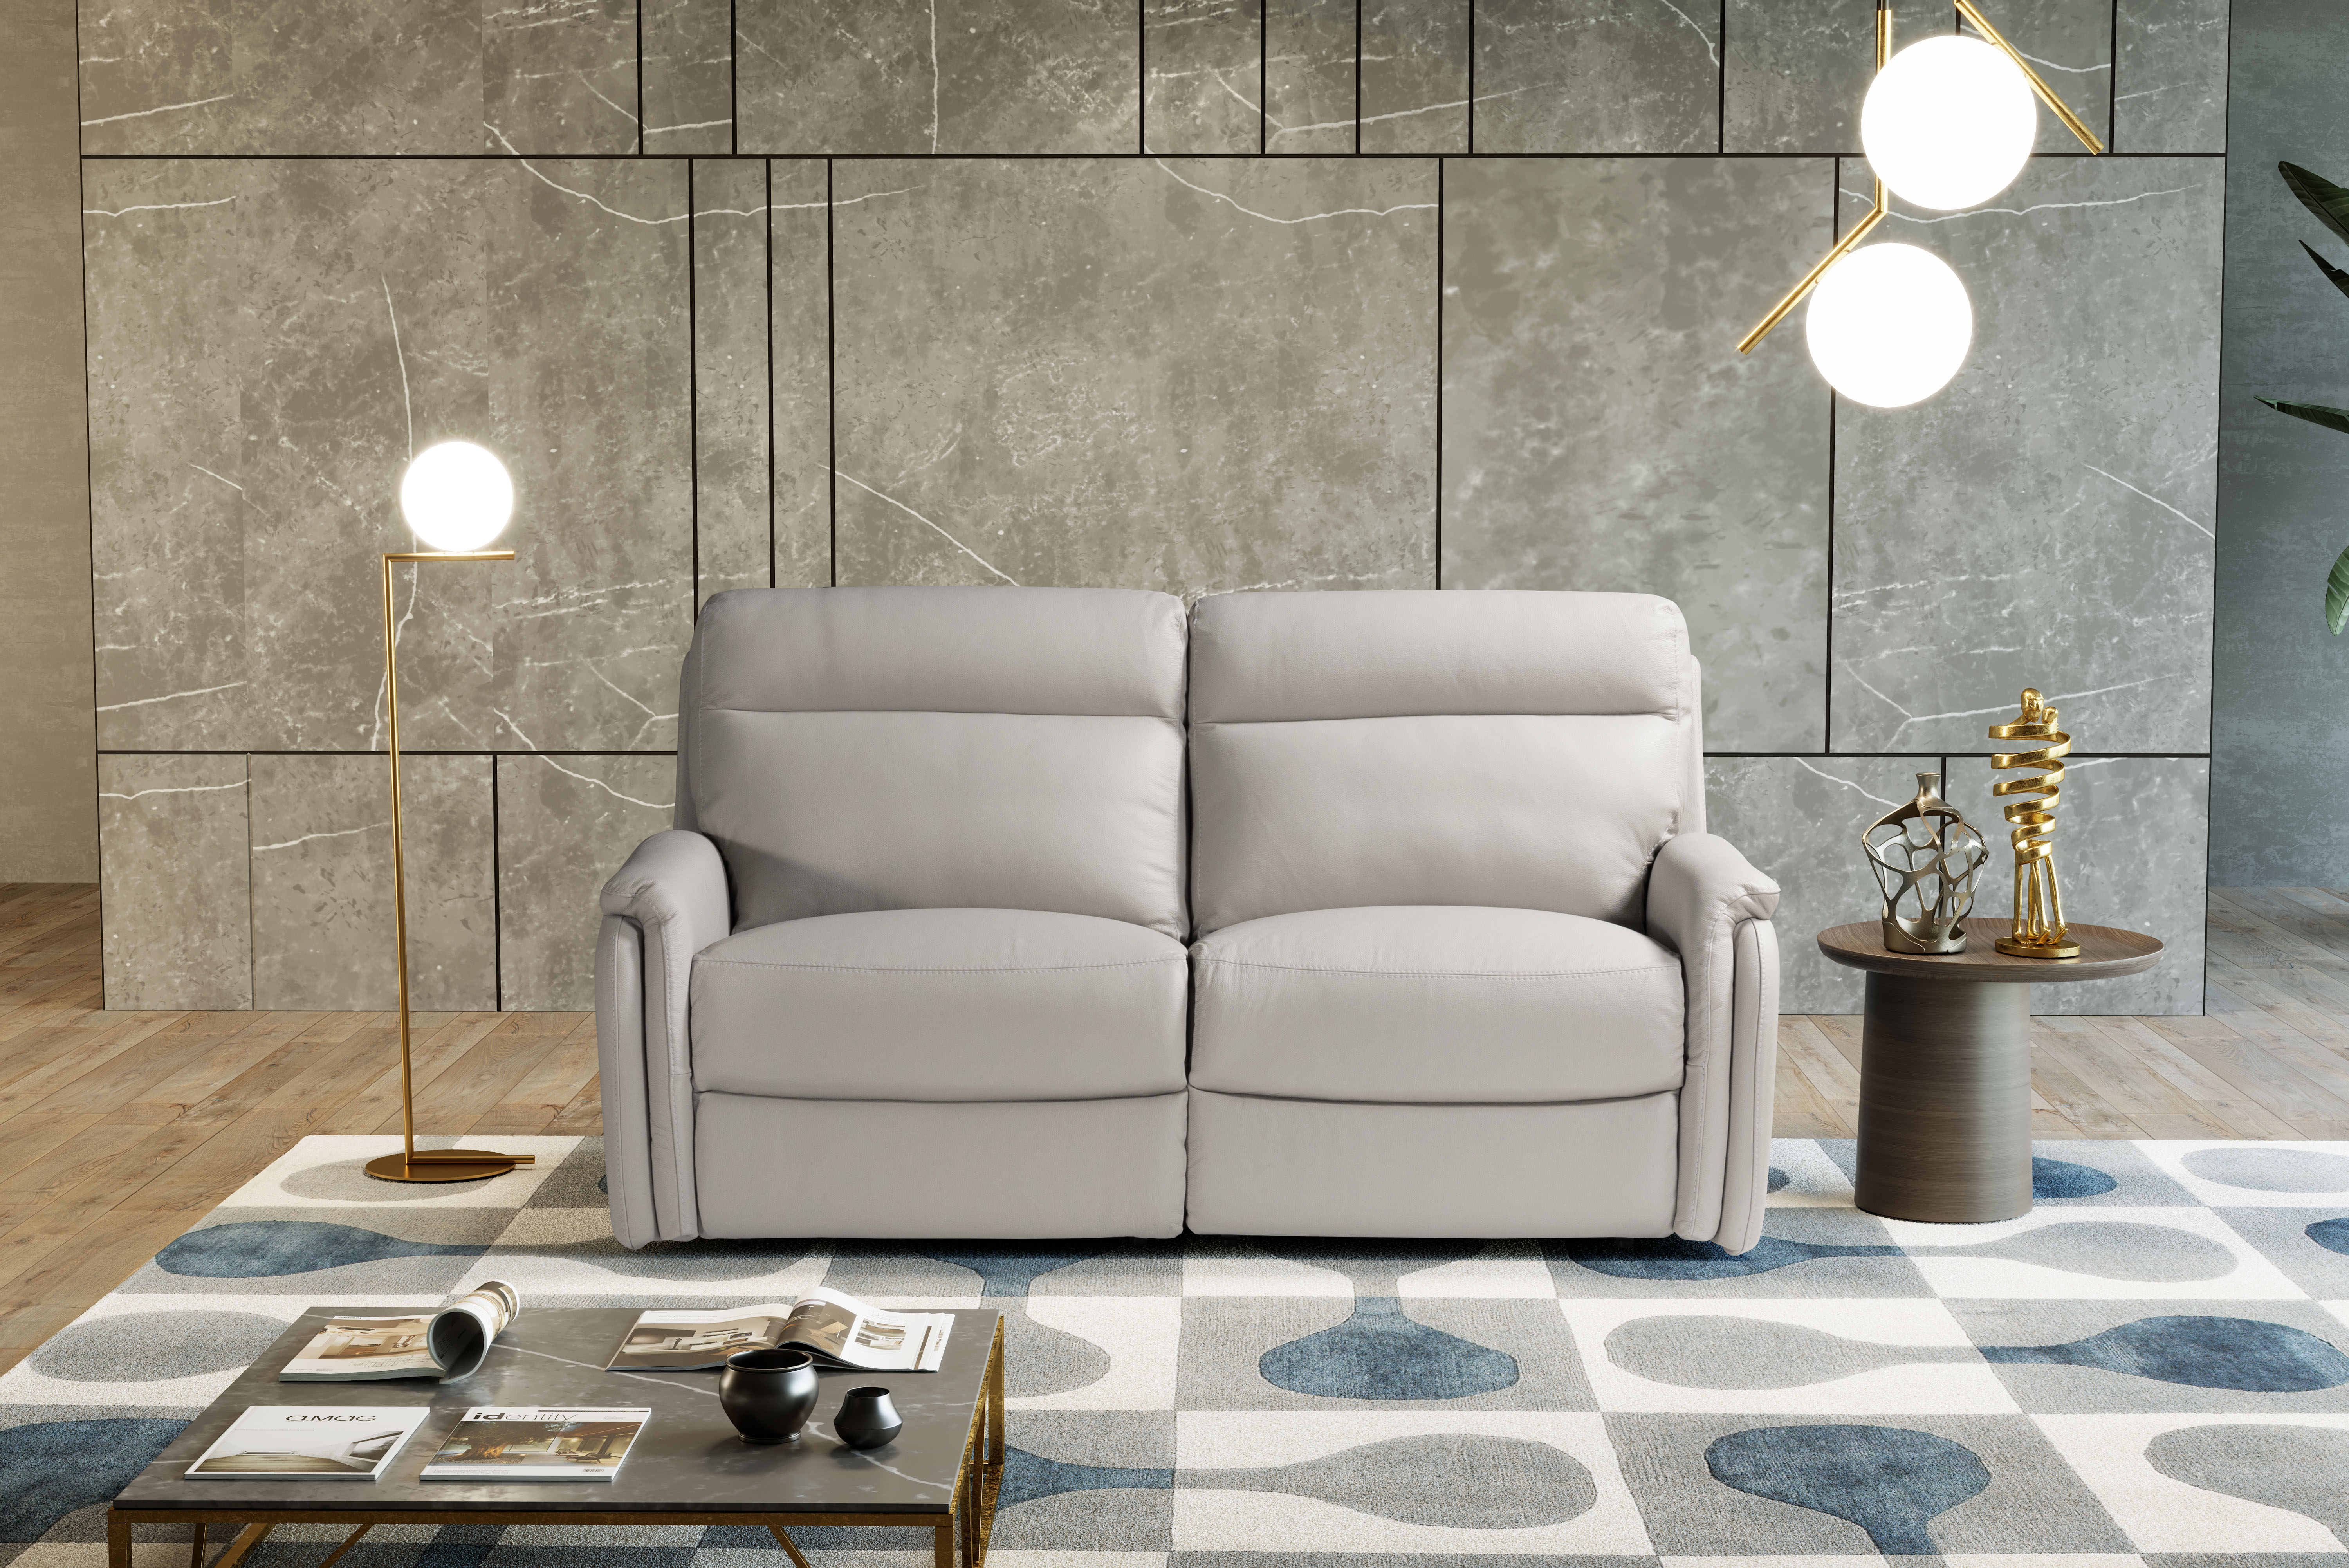 FOX Italian Leather Recliner 3 & 2 Seat Sofa by Galieri - Cenere Light Grey - Image 2 of 4